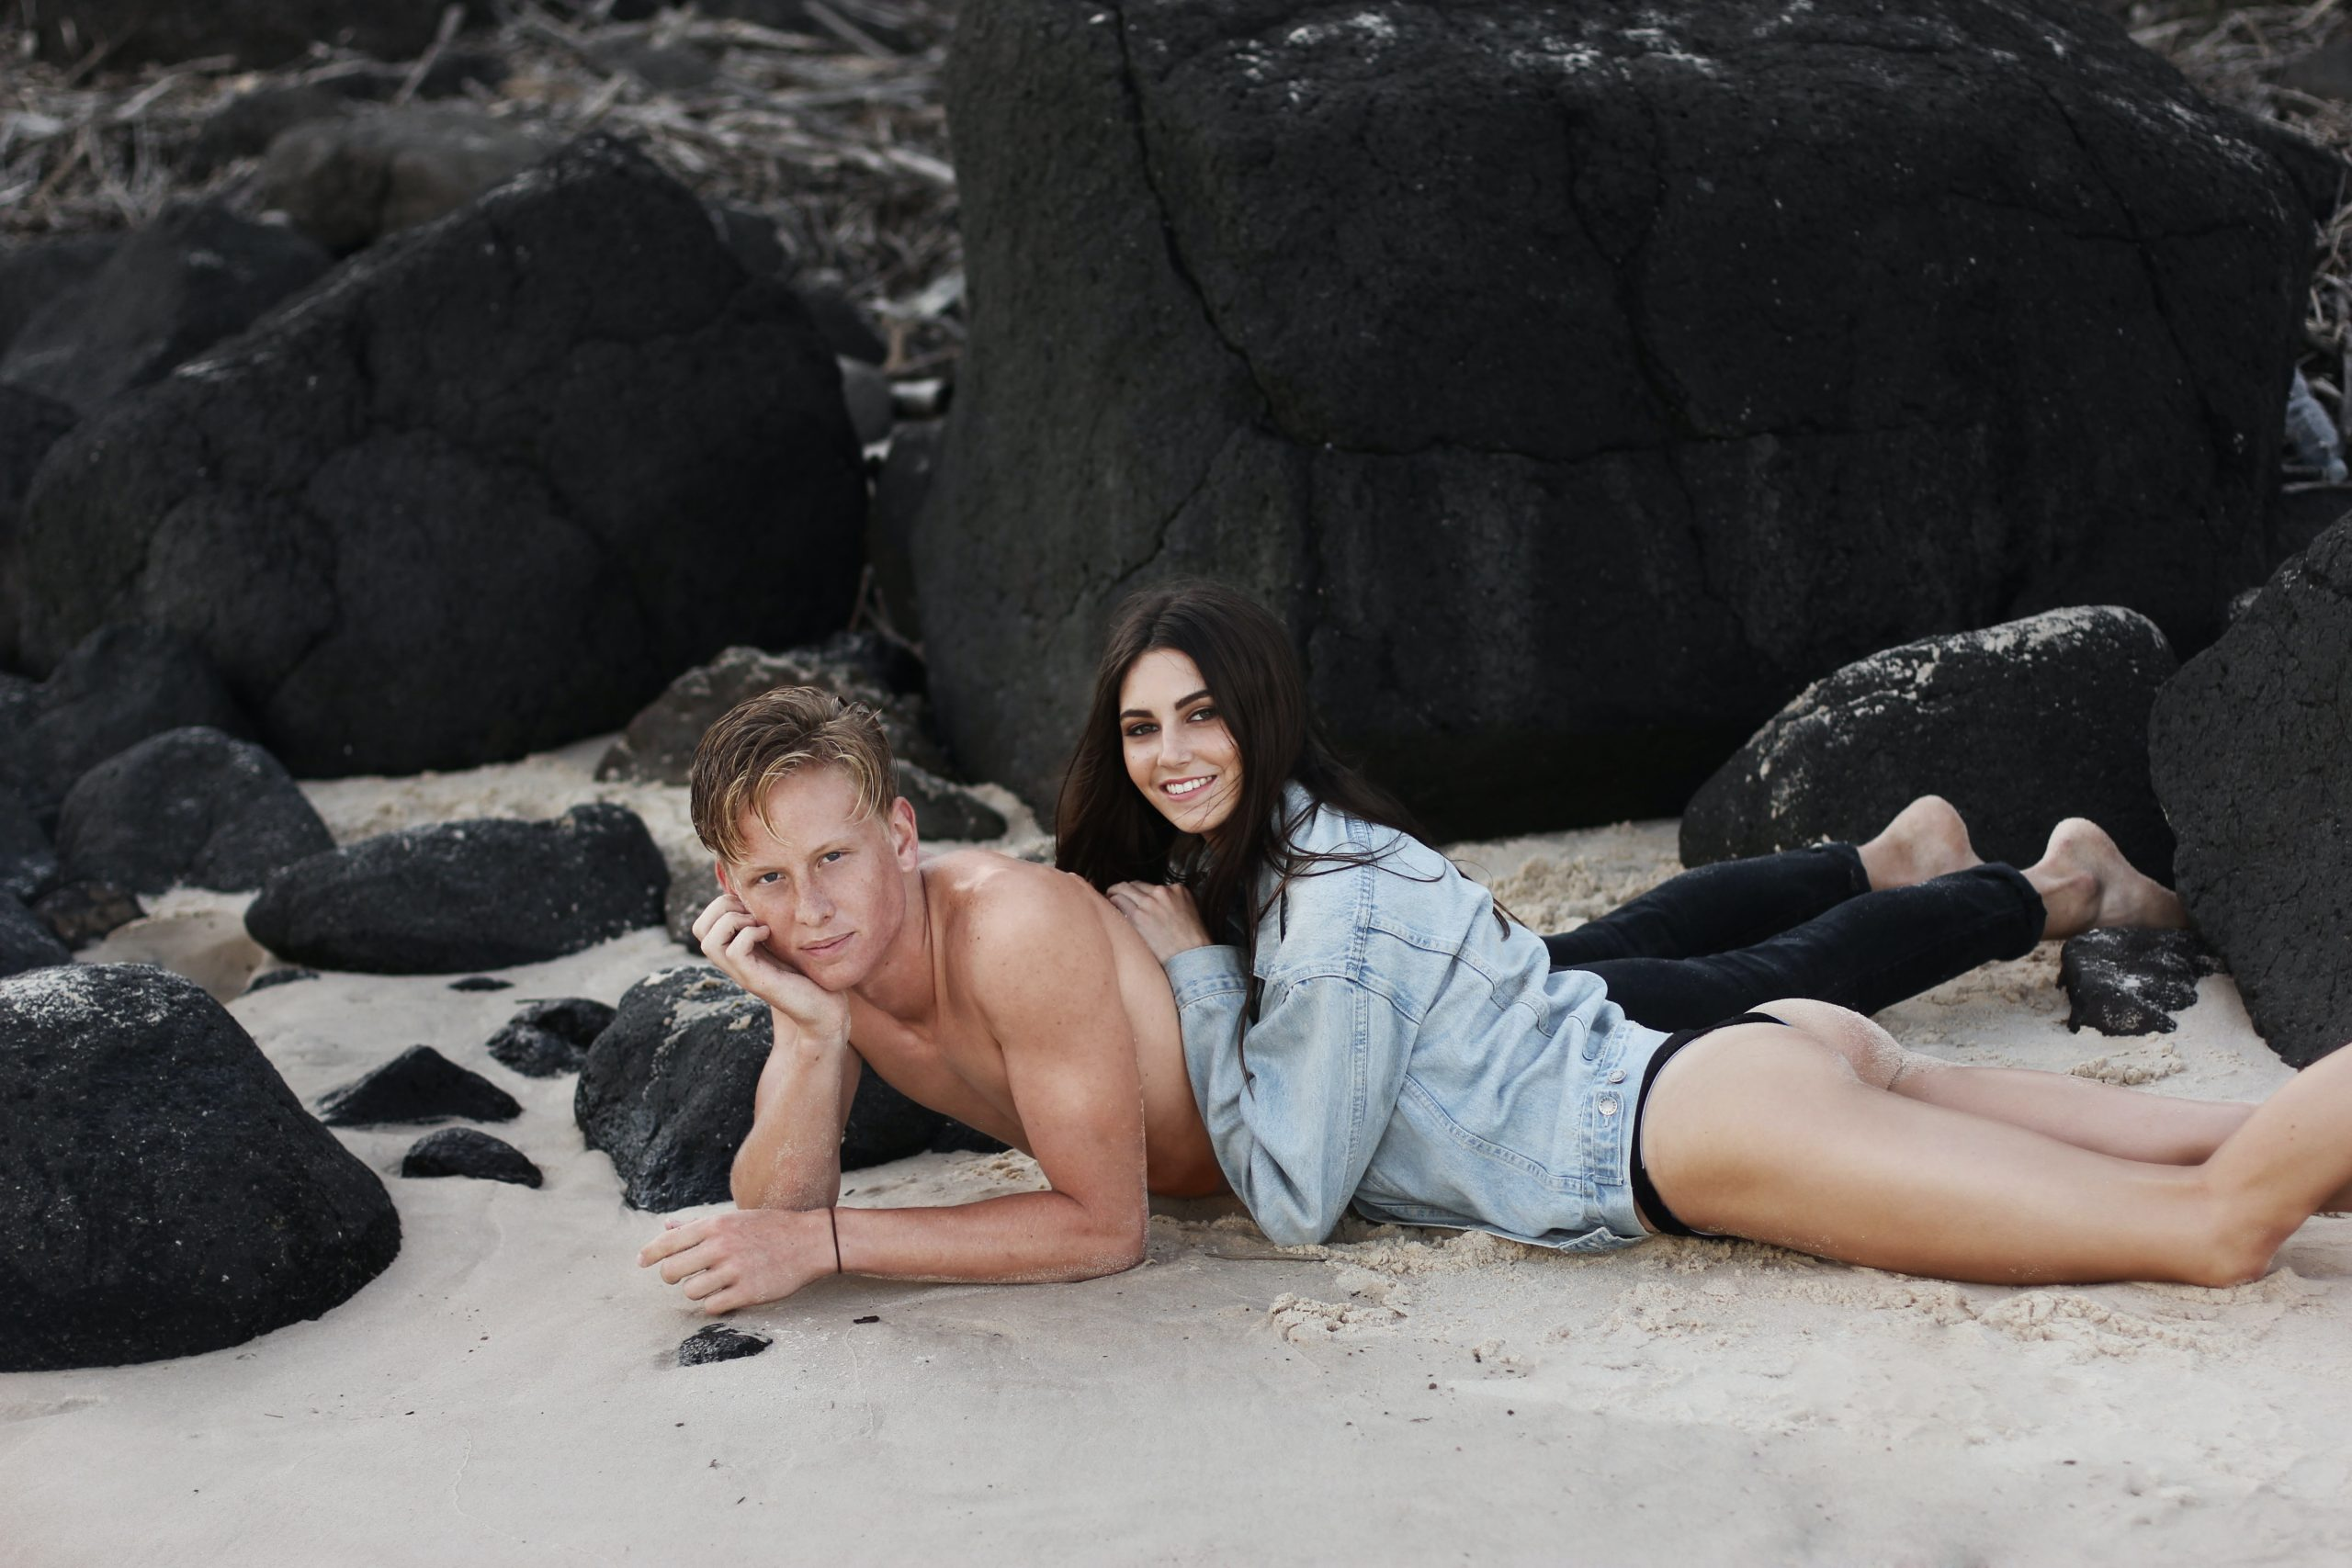 While during this shoot with Cassidy and Janiv, Cassidy's denim jacket was stolen other beachgoers just after this shot. She still smiled the rest of the time. :)